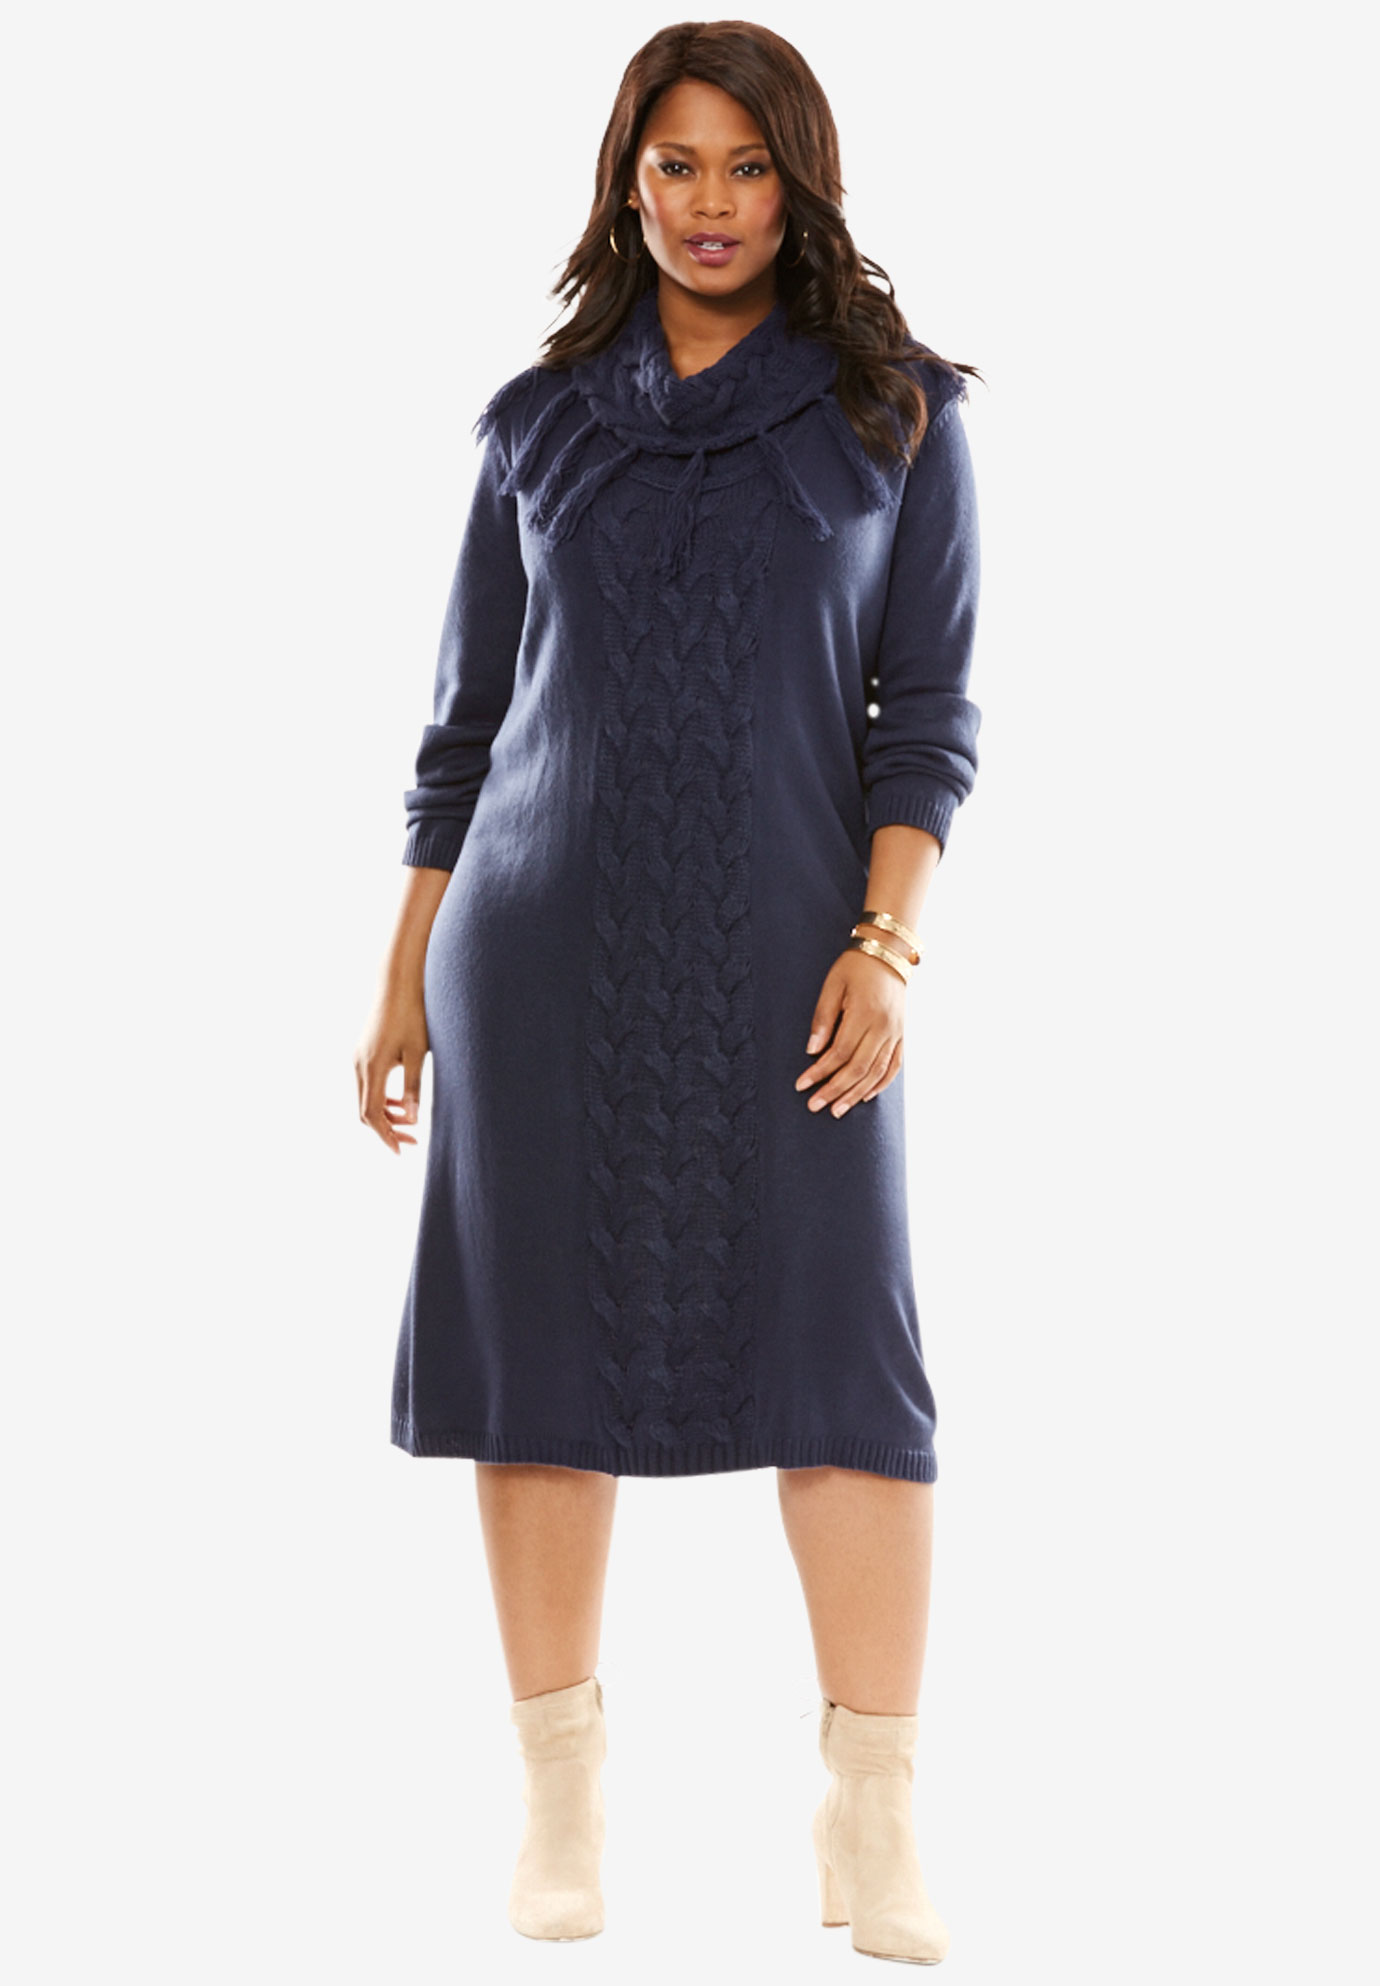 Cable Knit Sweater Dress | Plus Size Dresses | Roamanu0026#39;s